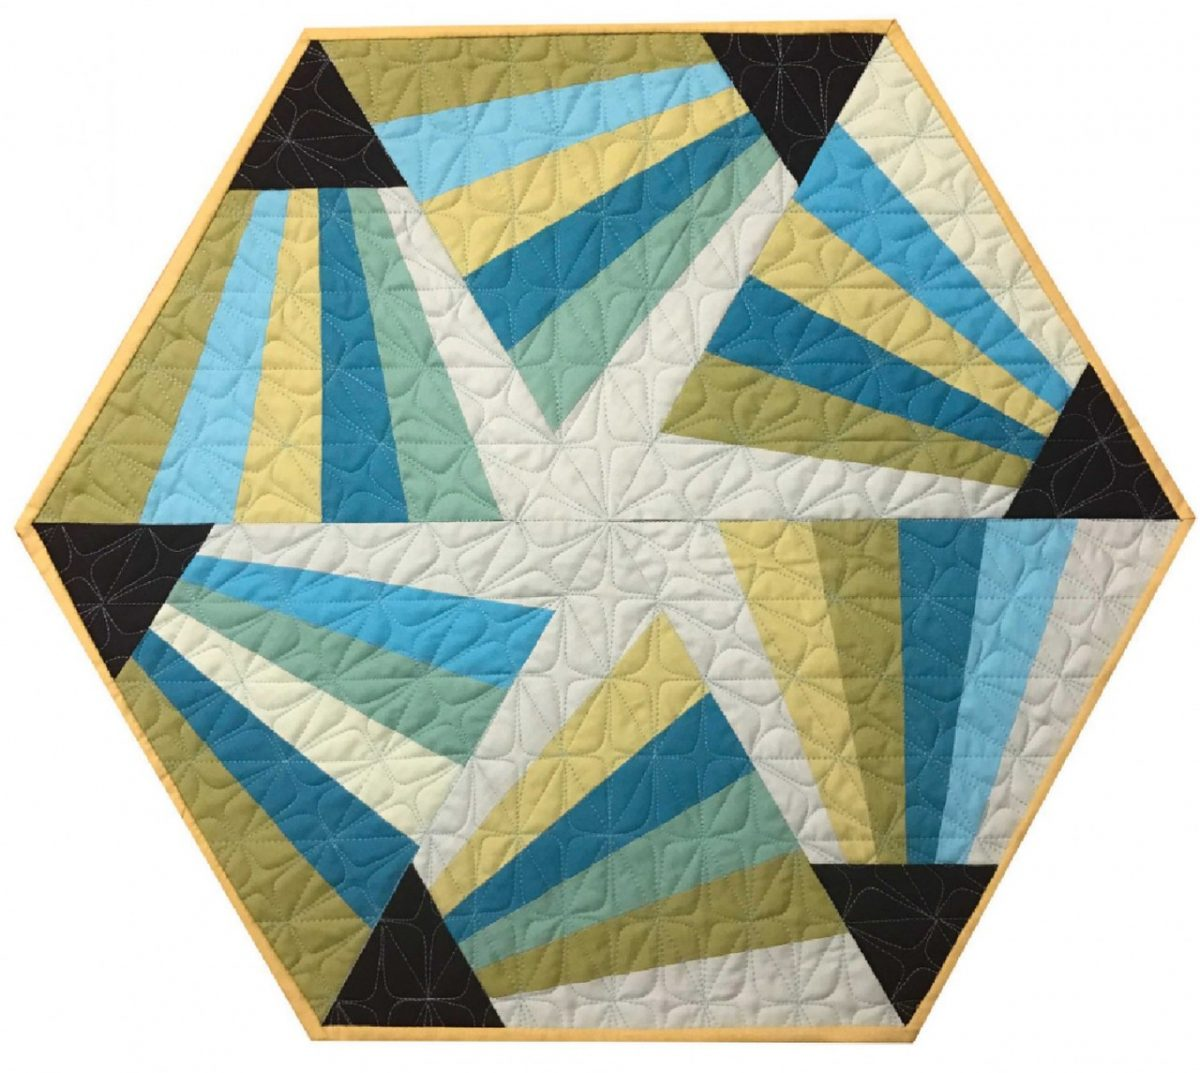 CLPCCA001 - Magic Triangle Table Topper Pattern by Cut Loose Press